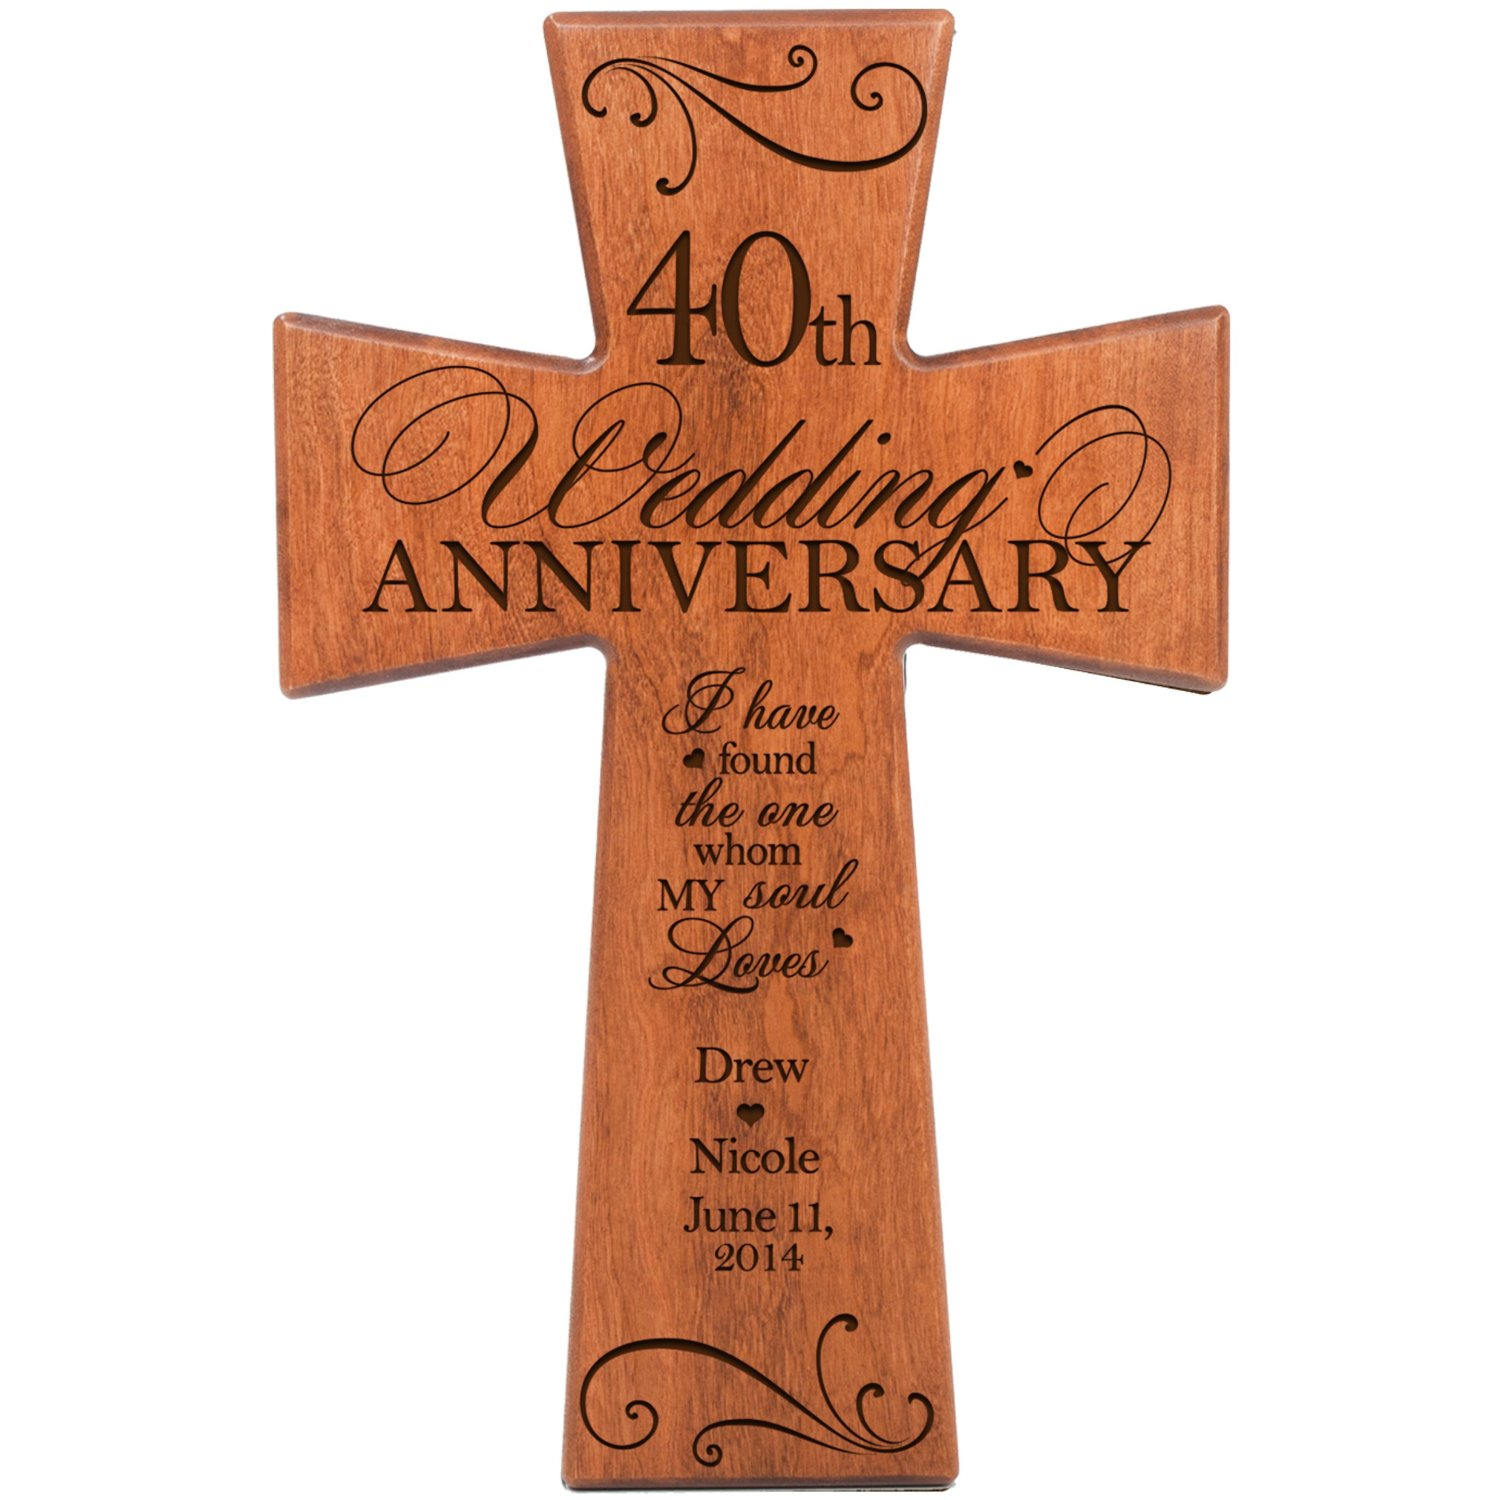 Personalized 40th Wedding Anniversary Gift for Couple Cherry Wall Cross, 40th Ruby Gifts for Her 40 year ideas for Him I Have Found the One Whom My Soul Loves by DaySpring Milestones (7x11)